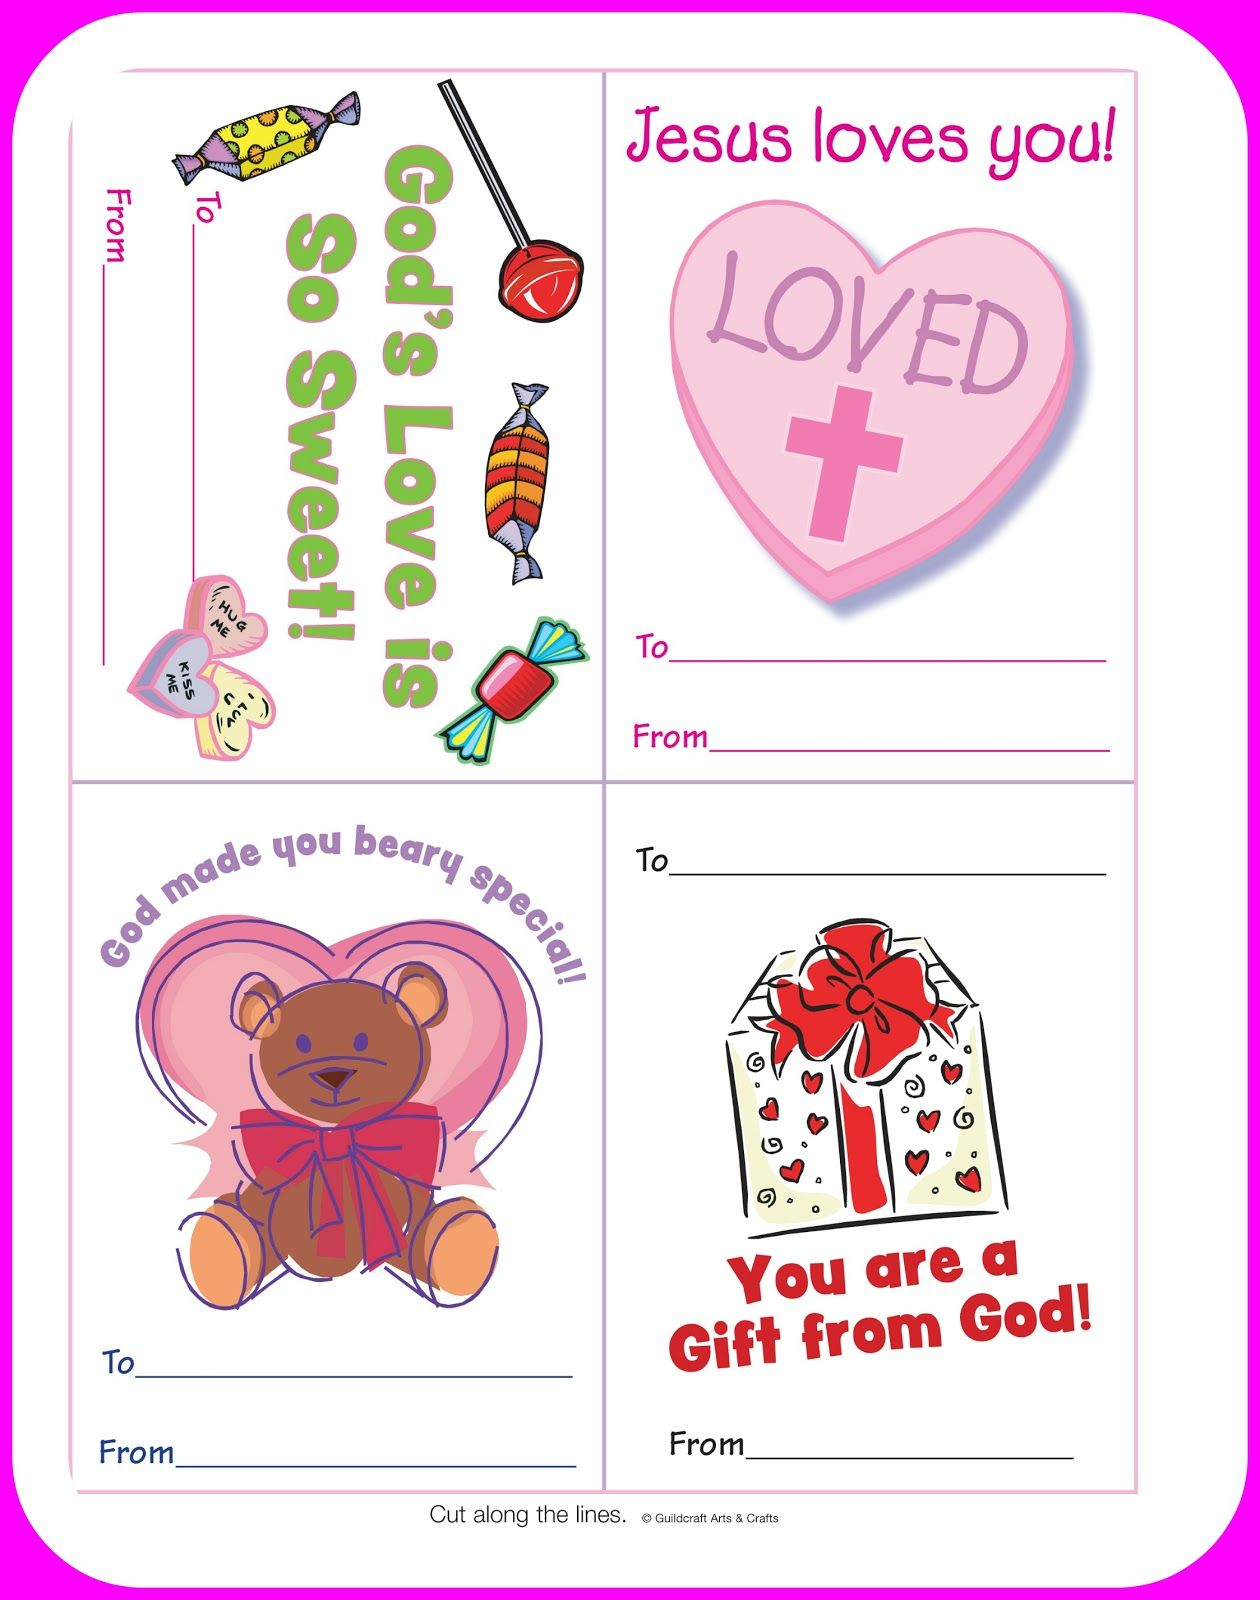 Free Christian Valentine S Printables For Kids Courtesy Of Craft Junkie Too Christian Valentines Crafts Christian Valentines Cards Christian Valentines